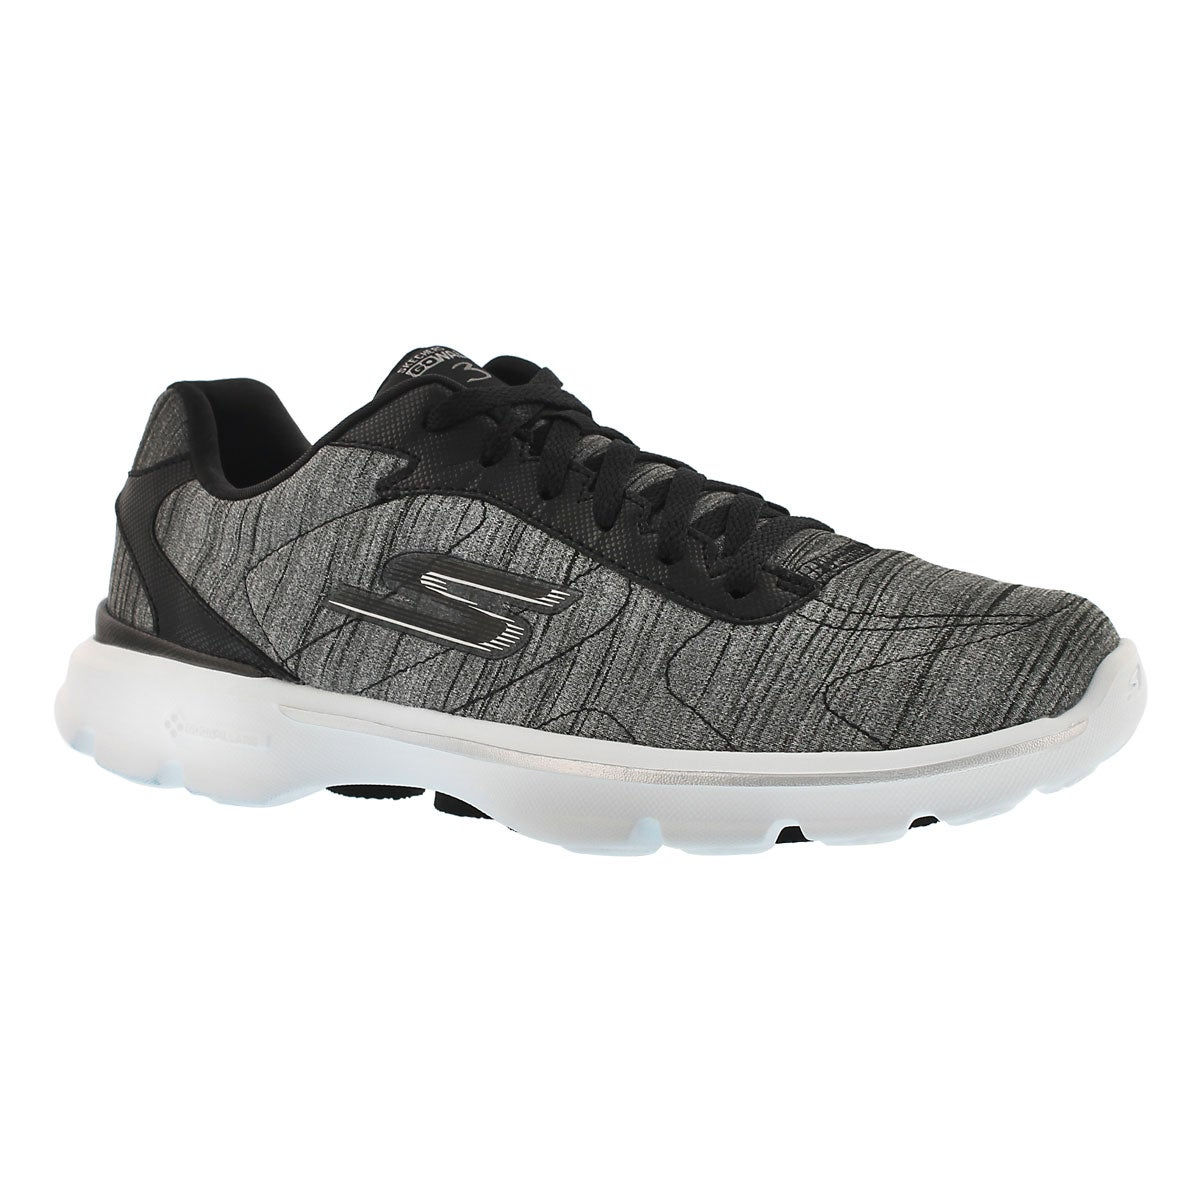 Lds GO Walk3 blk/wht laceup walking shoe